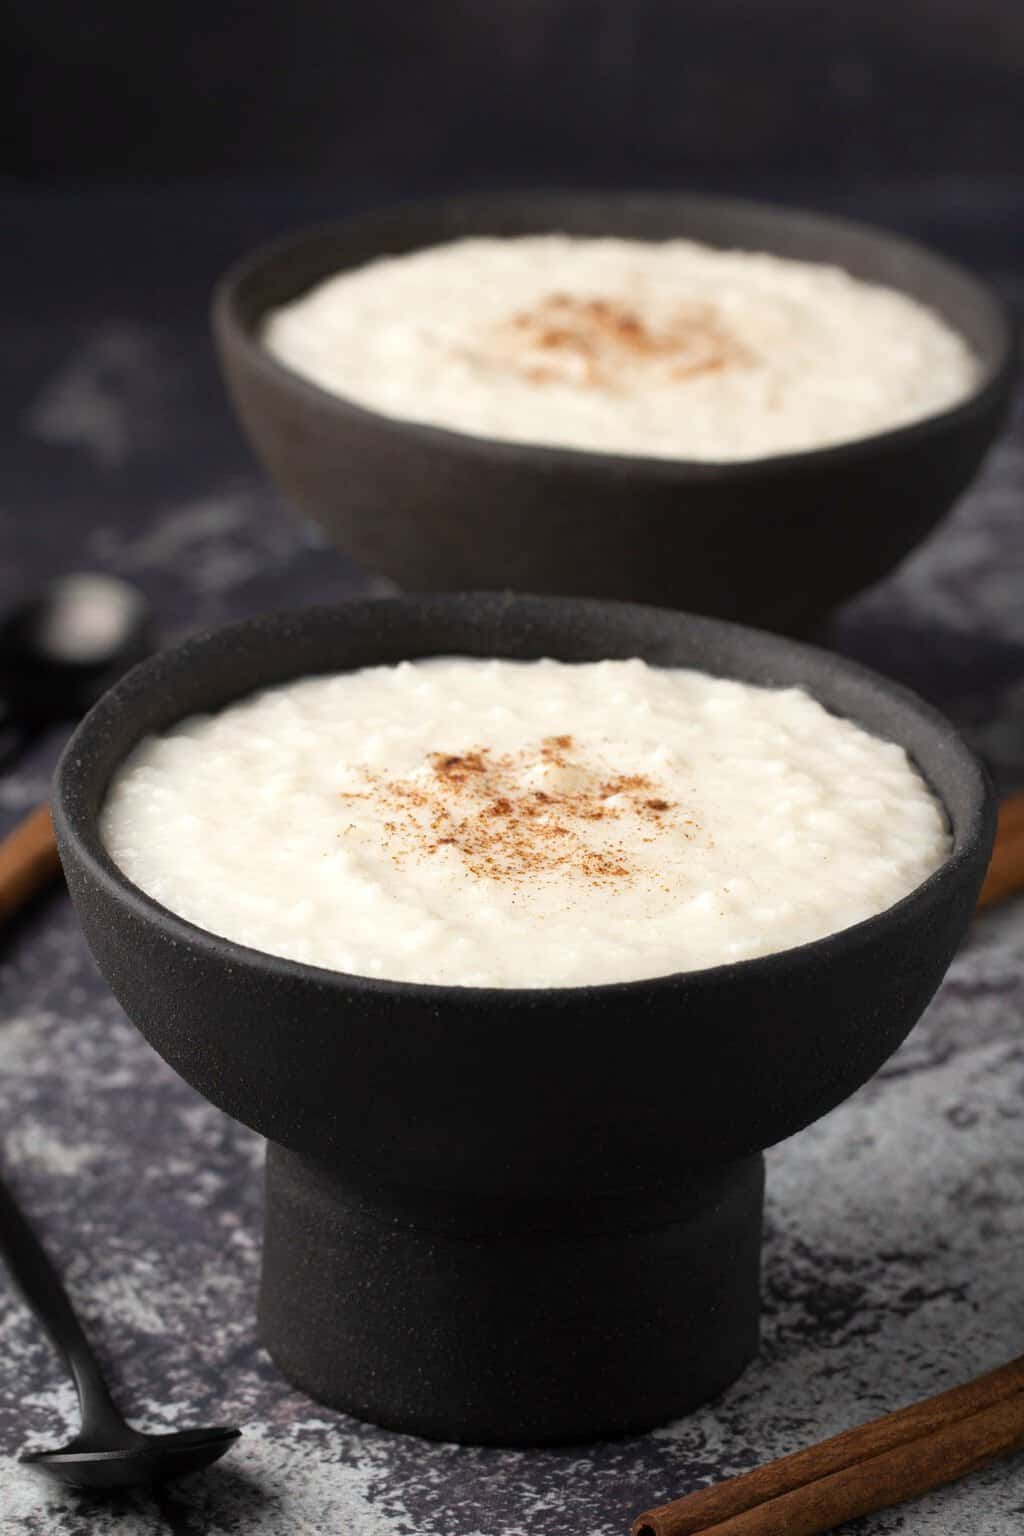 Vegan rice pudding topped with a sprinkle of cinnamon in black bowls.